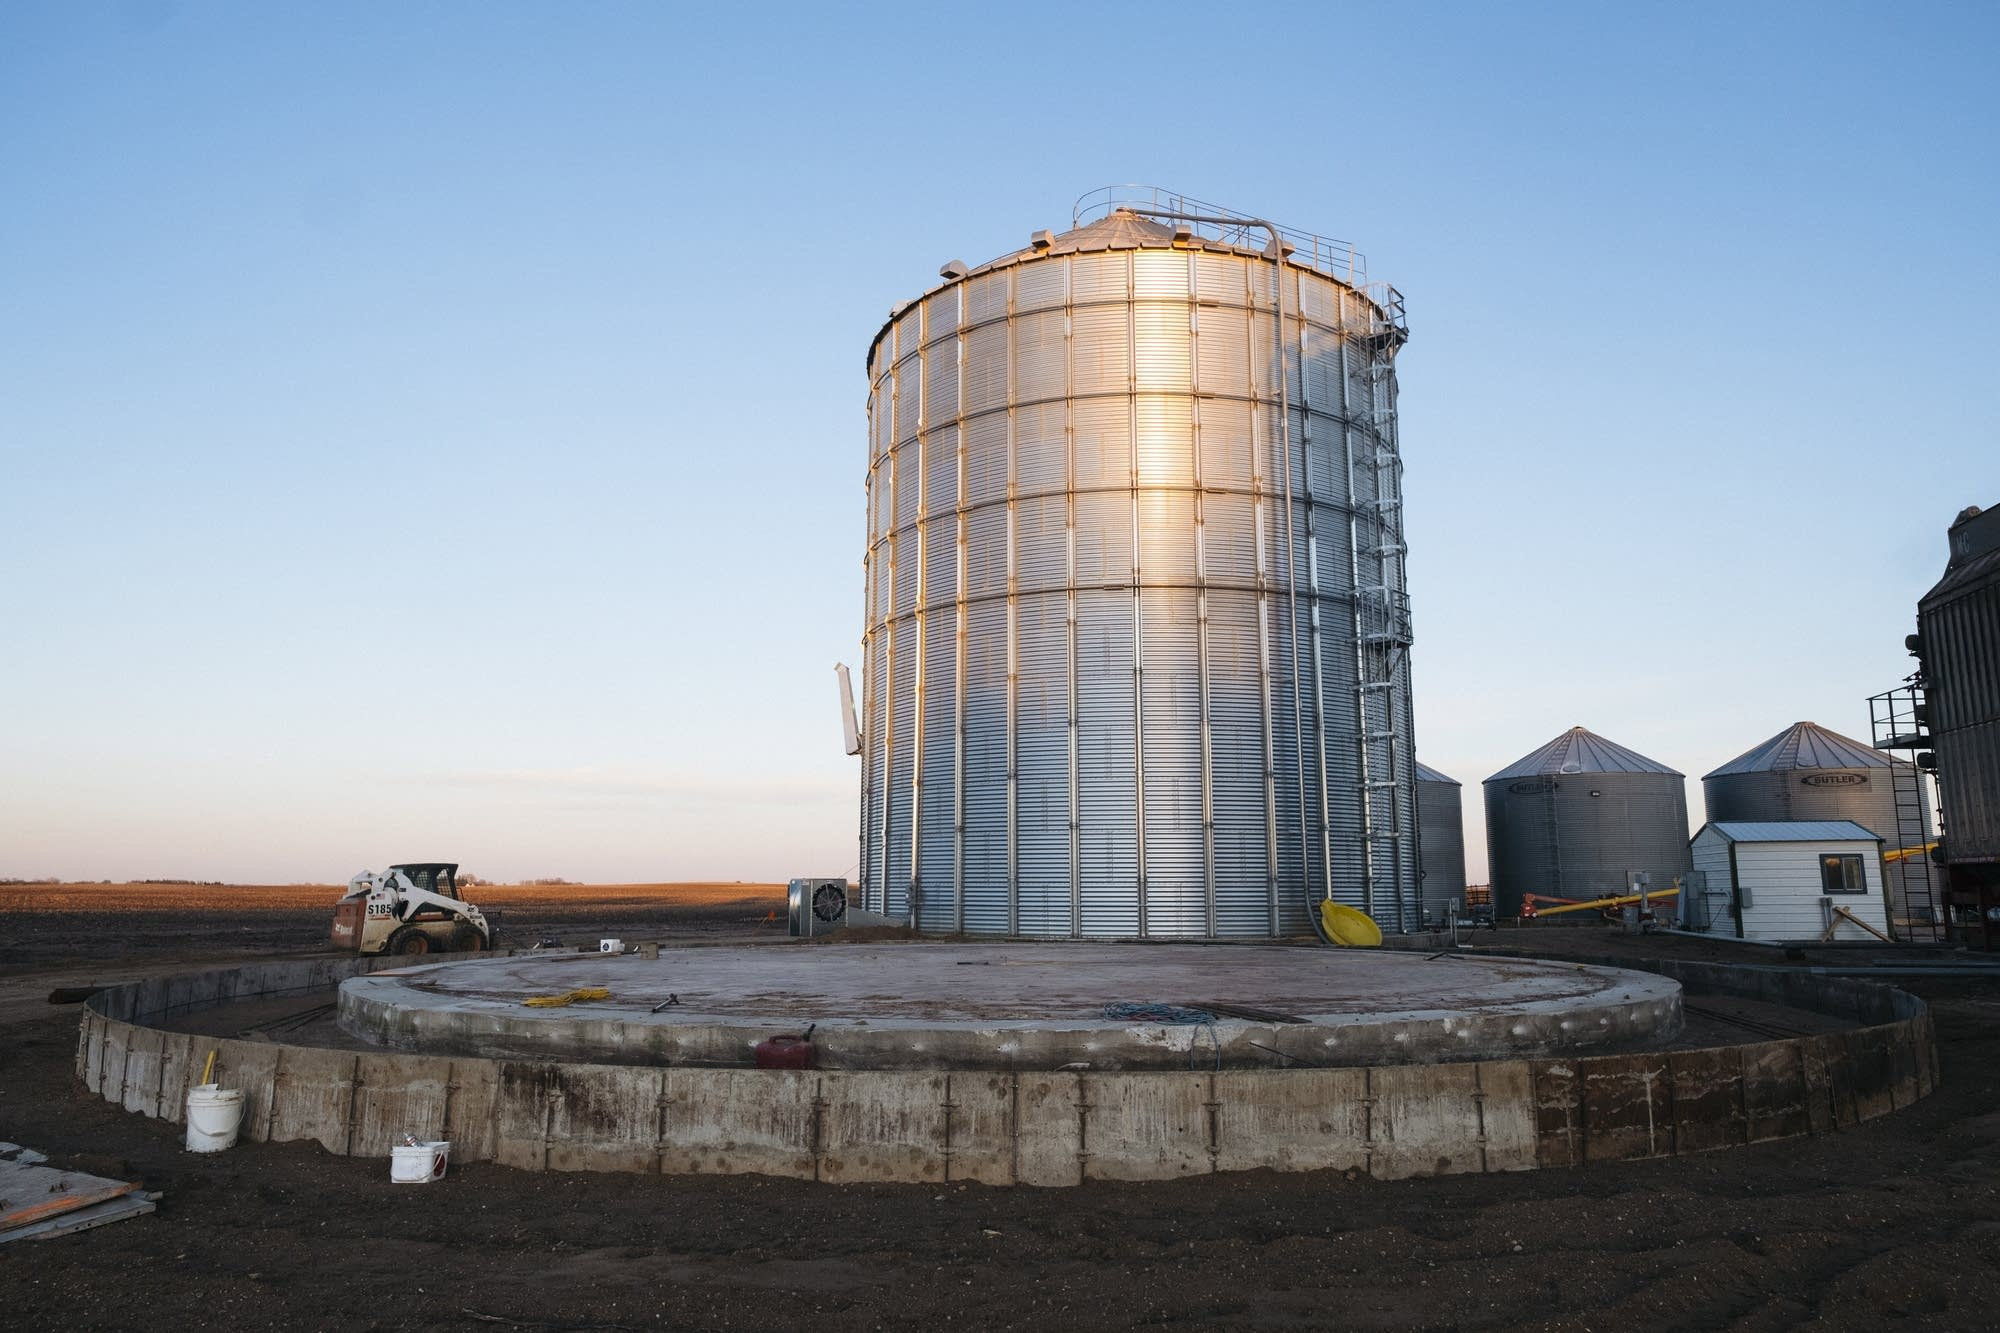 The sun sets on the grain storage site.